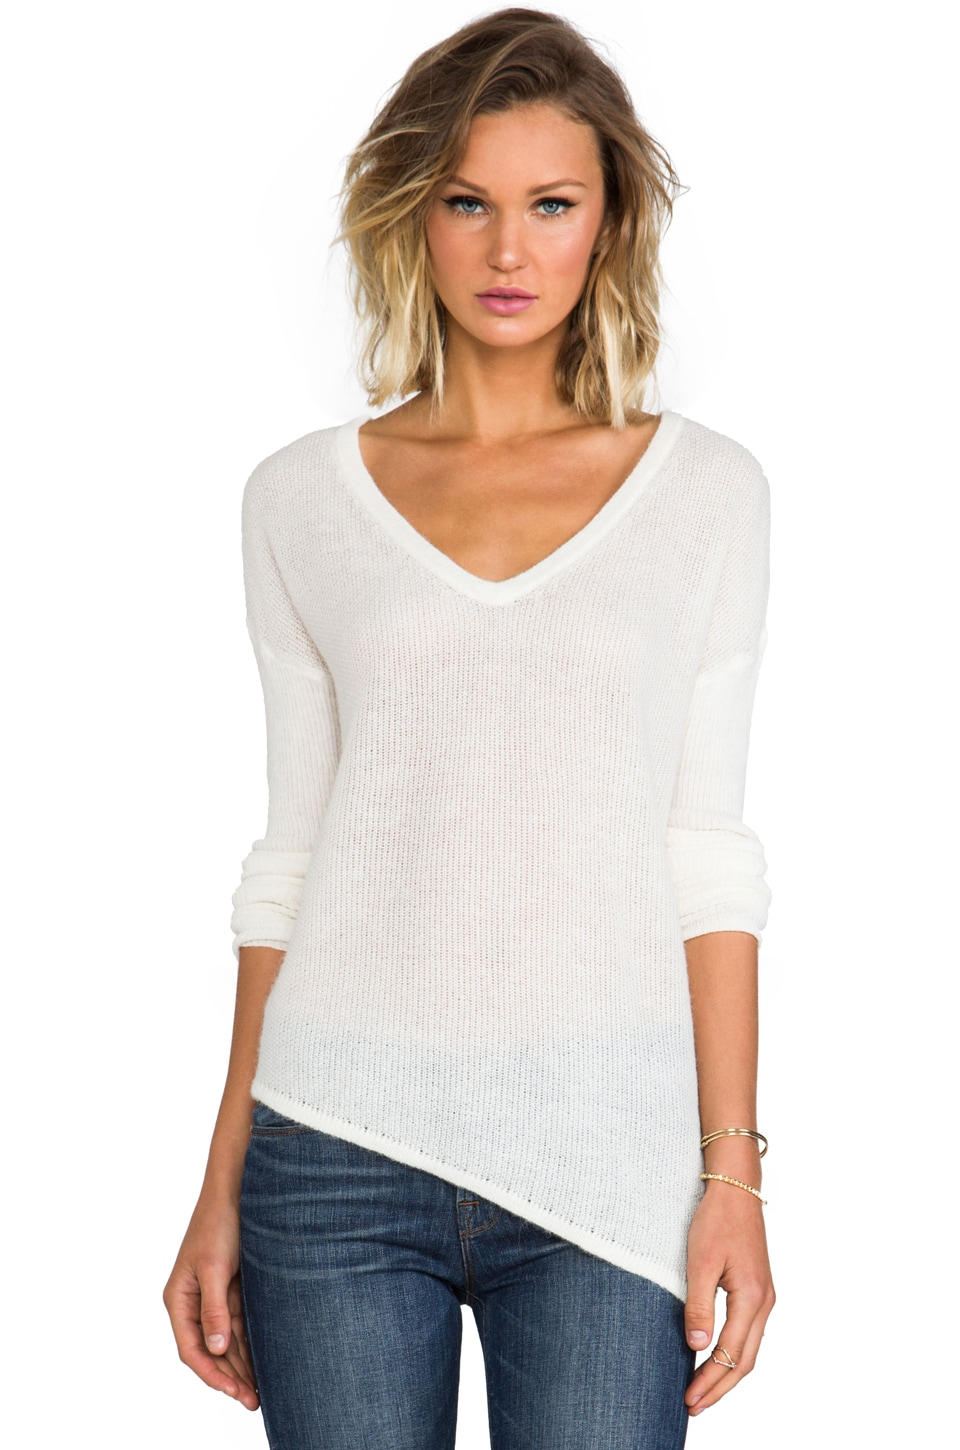 Feel the Piece Marni Sweater in Ivory